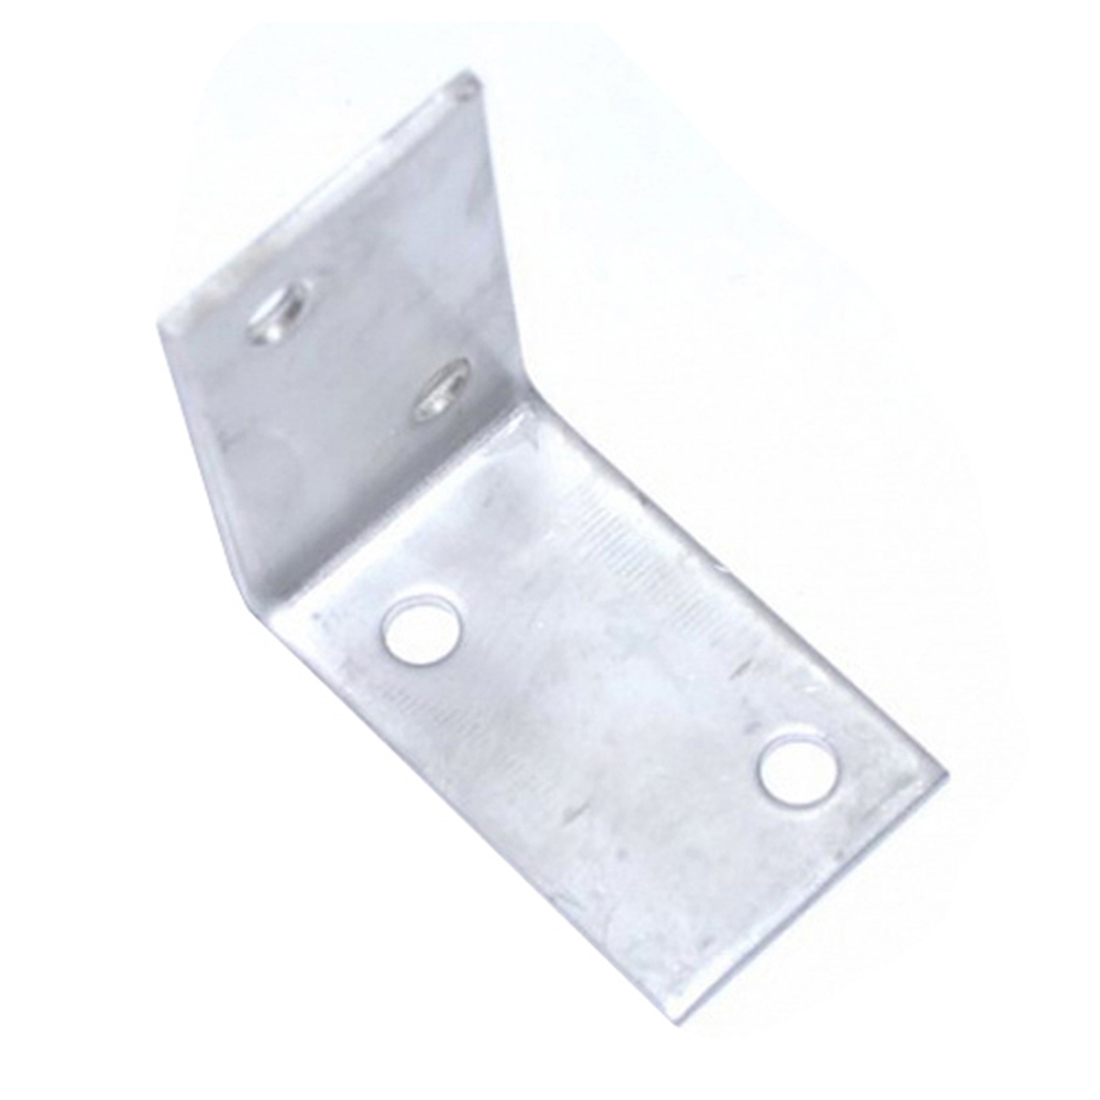 Angle Bracket M6 60 x 100 x 35 x 3mm 304 Stainless Steel BANH4100S035R